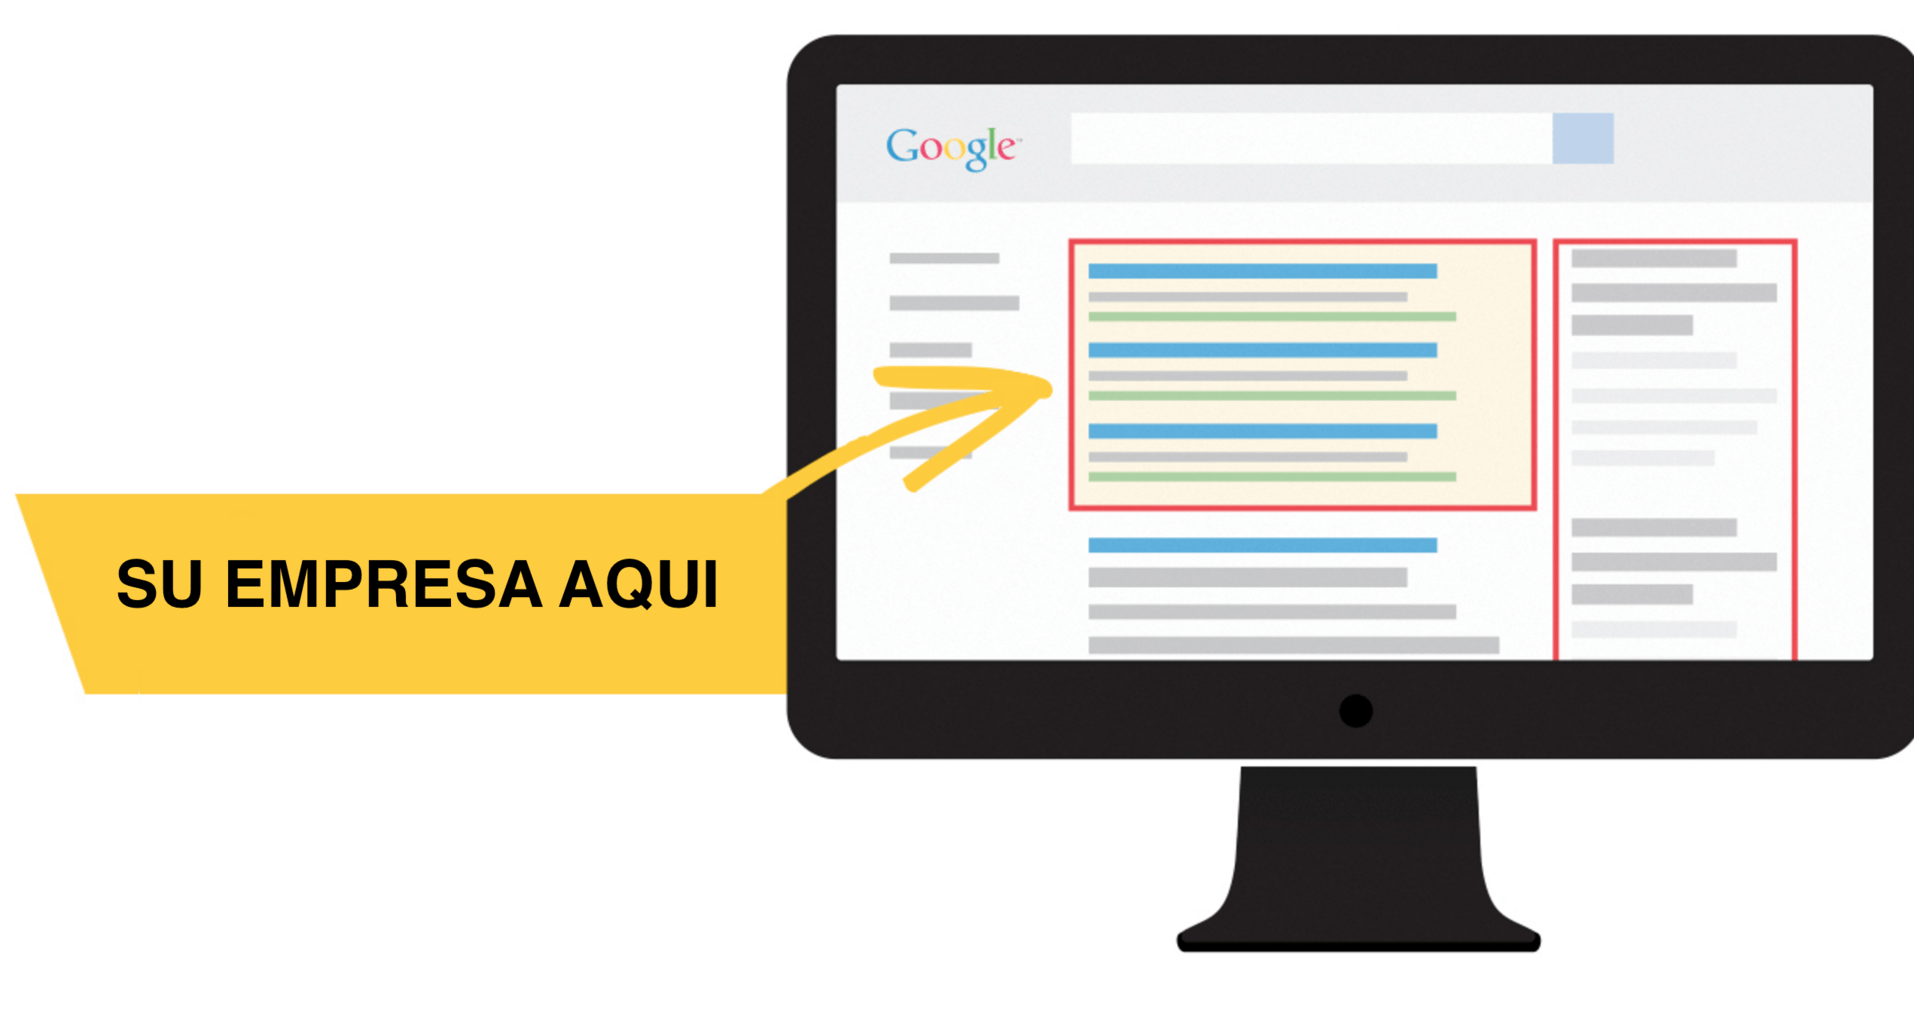 captacion de clientes, posicionamiento google adwords, google adwords